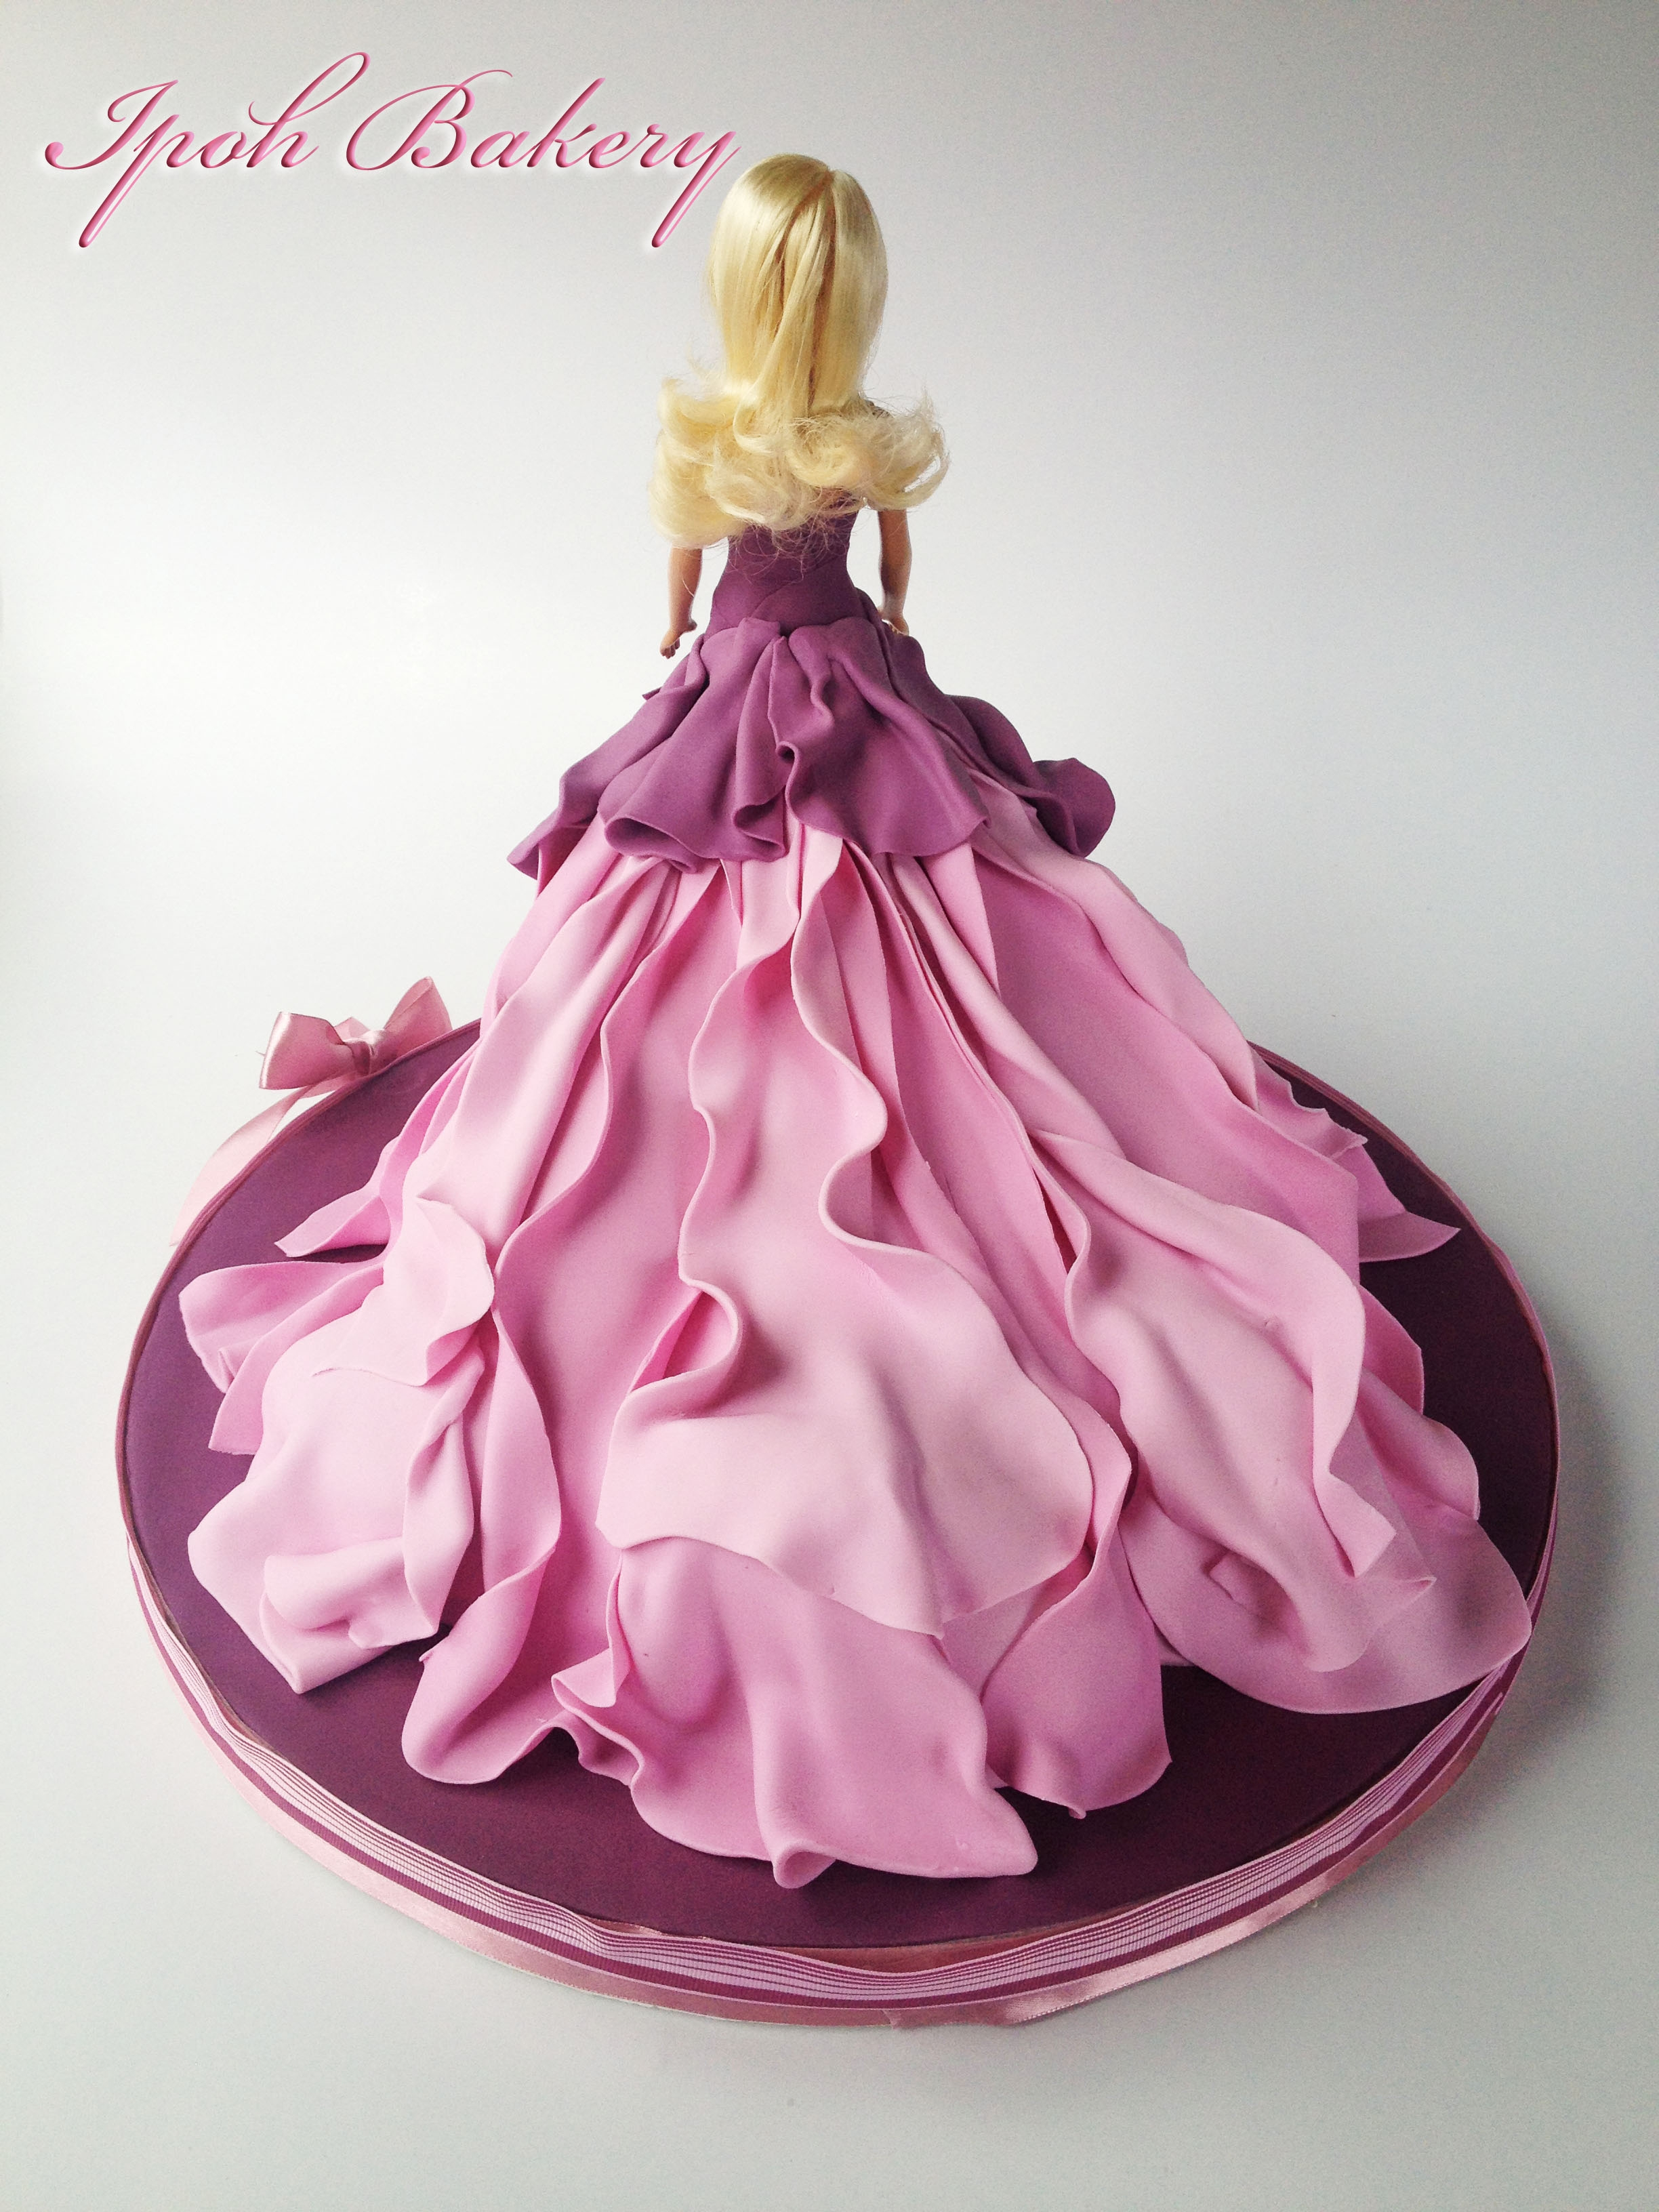 Images Of A Barbie Cake : A Different Take On The Barbie Doll Cake Instead Of A Dome ...